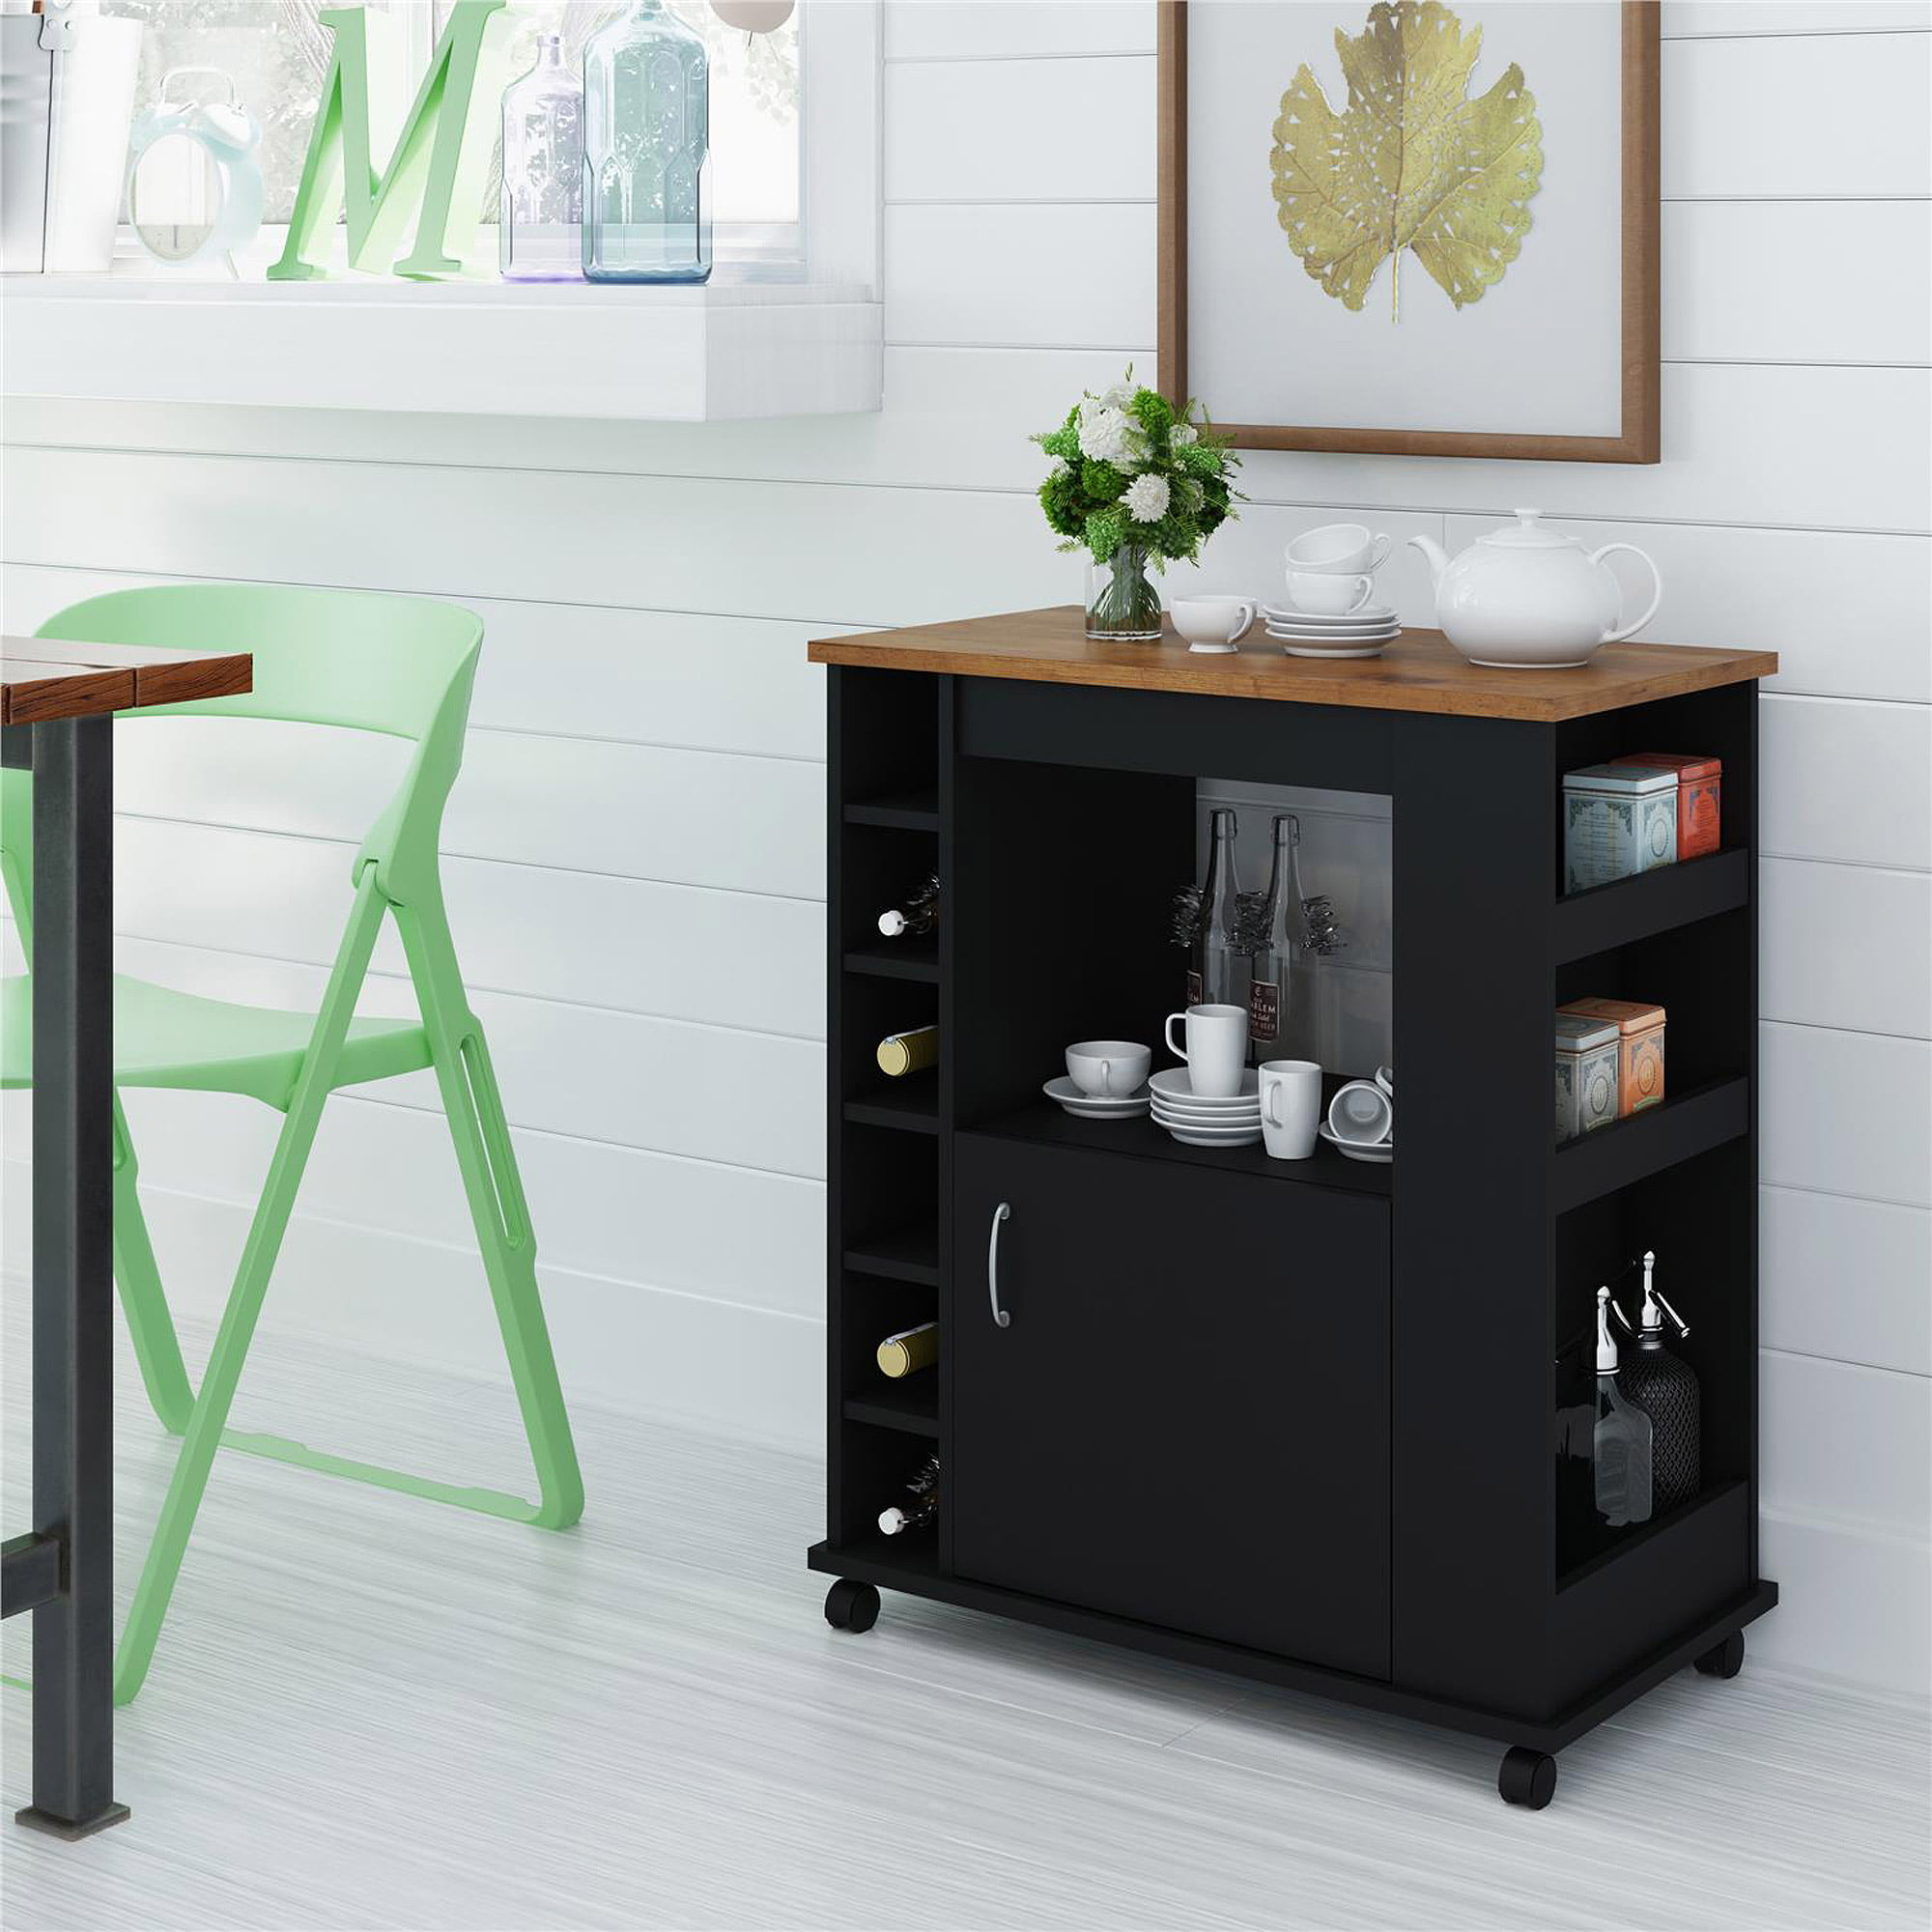 Ameriwood Home Wood Kitchen Beverage Cart in Black Stipple